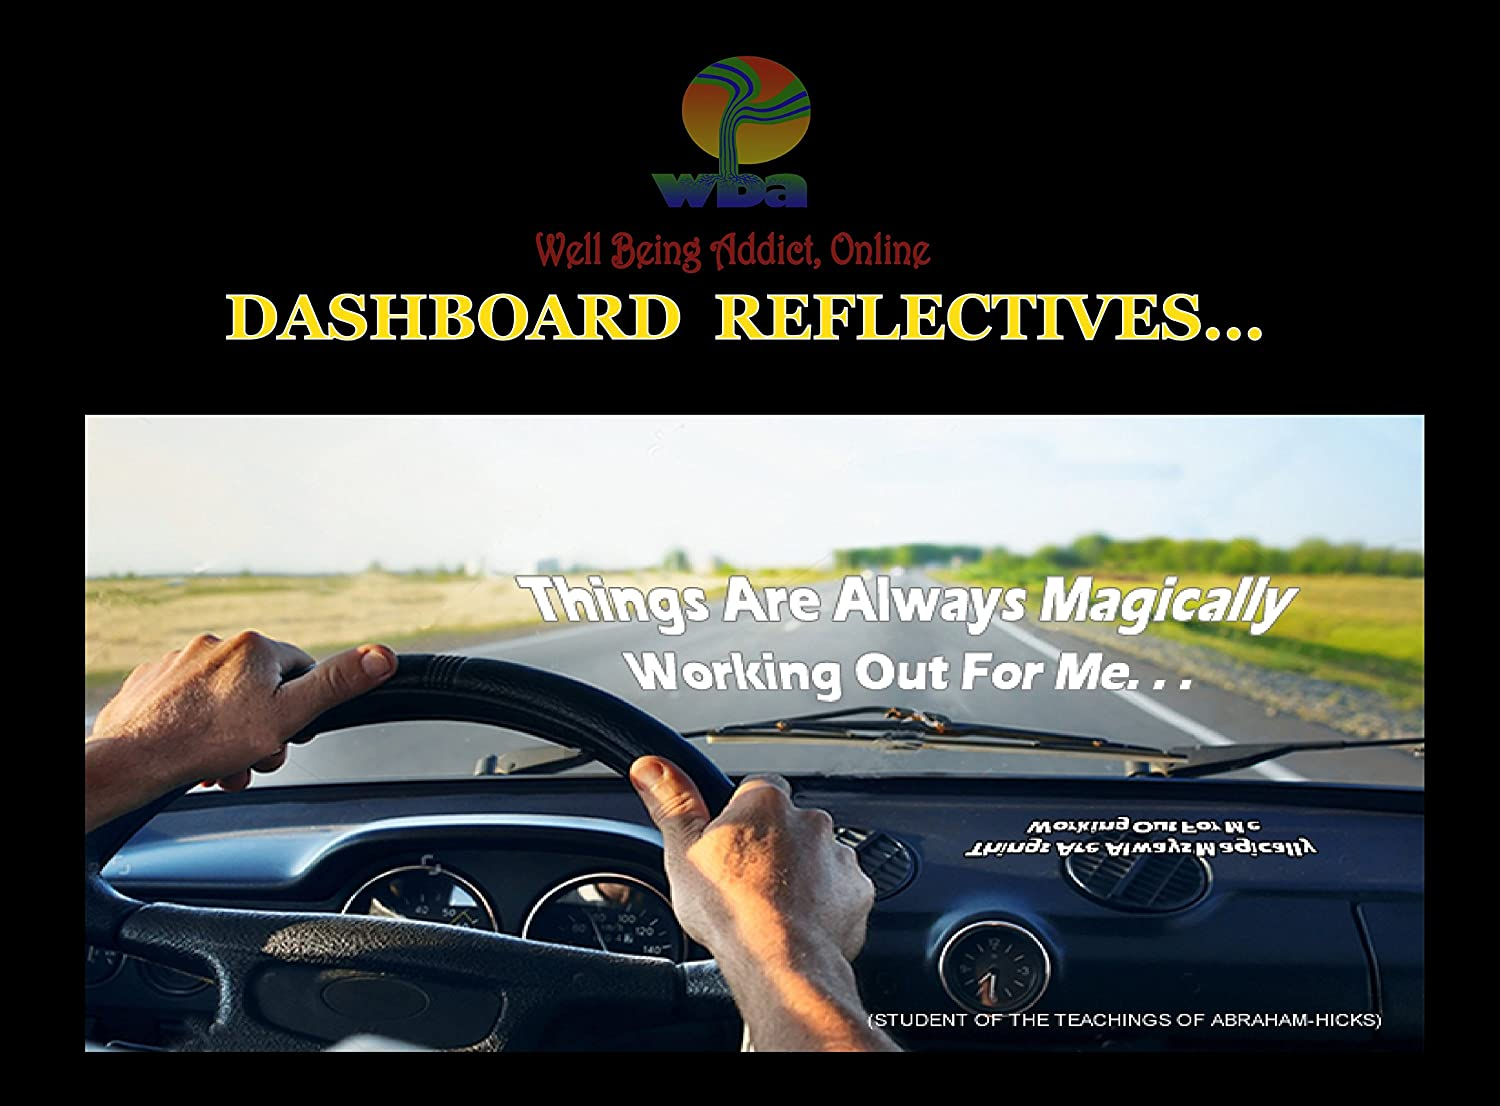 Spiritual Inspirational AffirmationThings Are Always Magically Working Out For Me Dashboard Reflective Positive